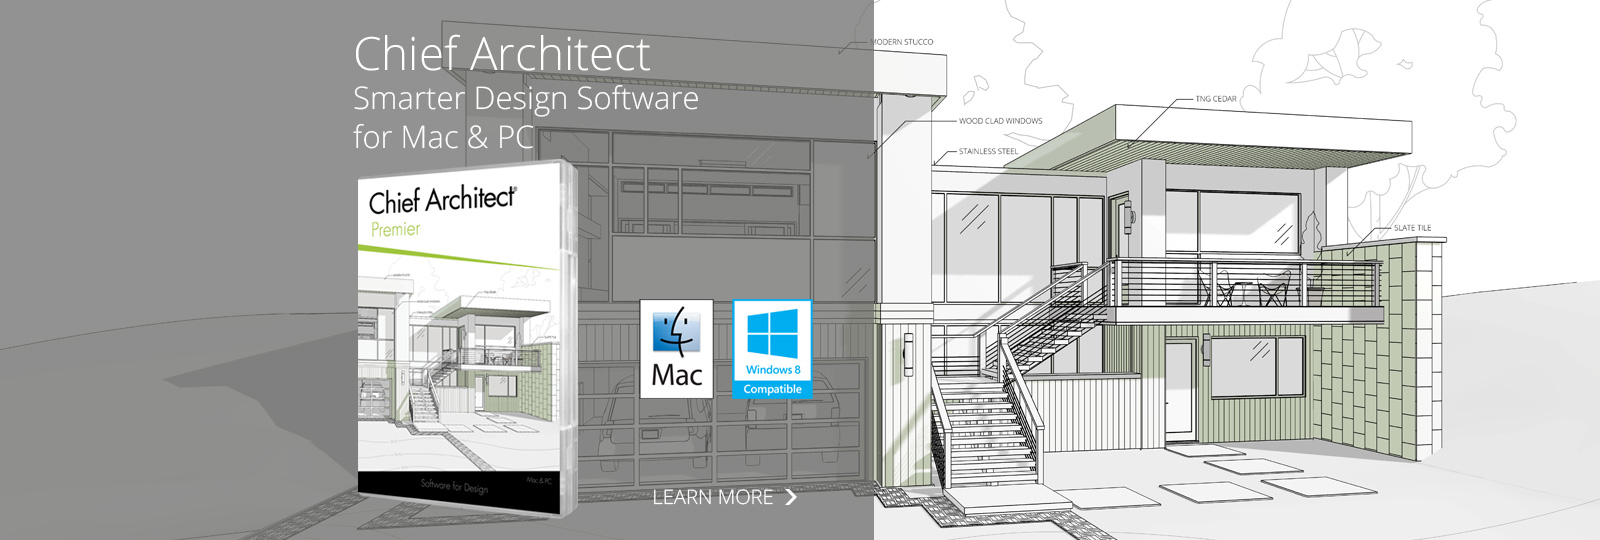 Architectural home design software by chief architect Home design software